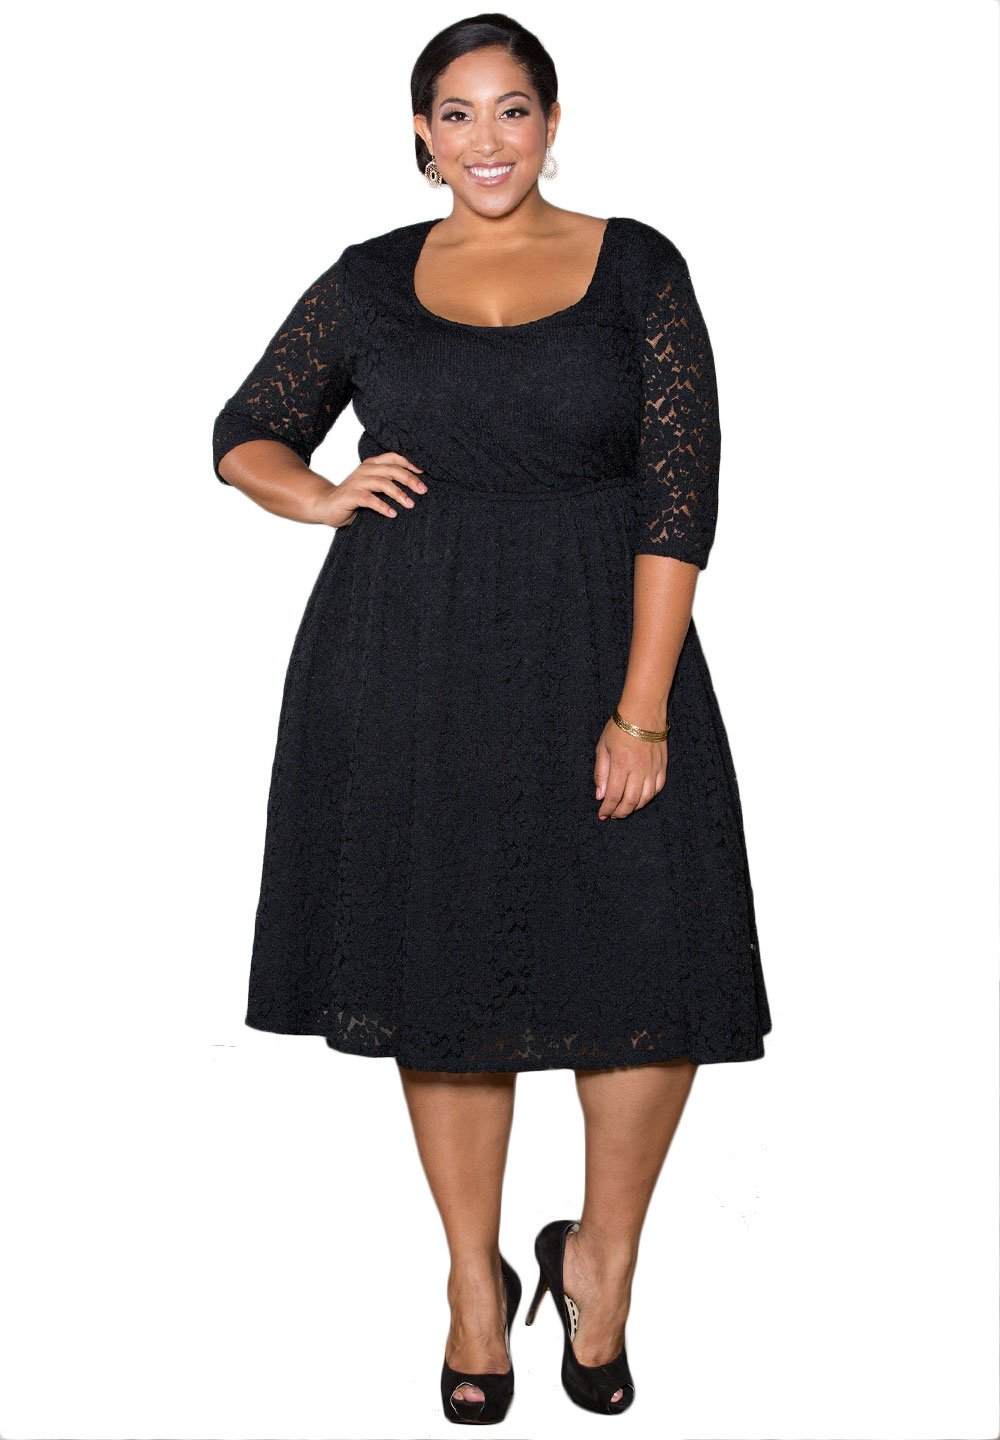 plus size clothes kenya